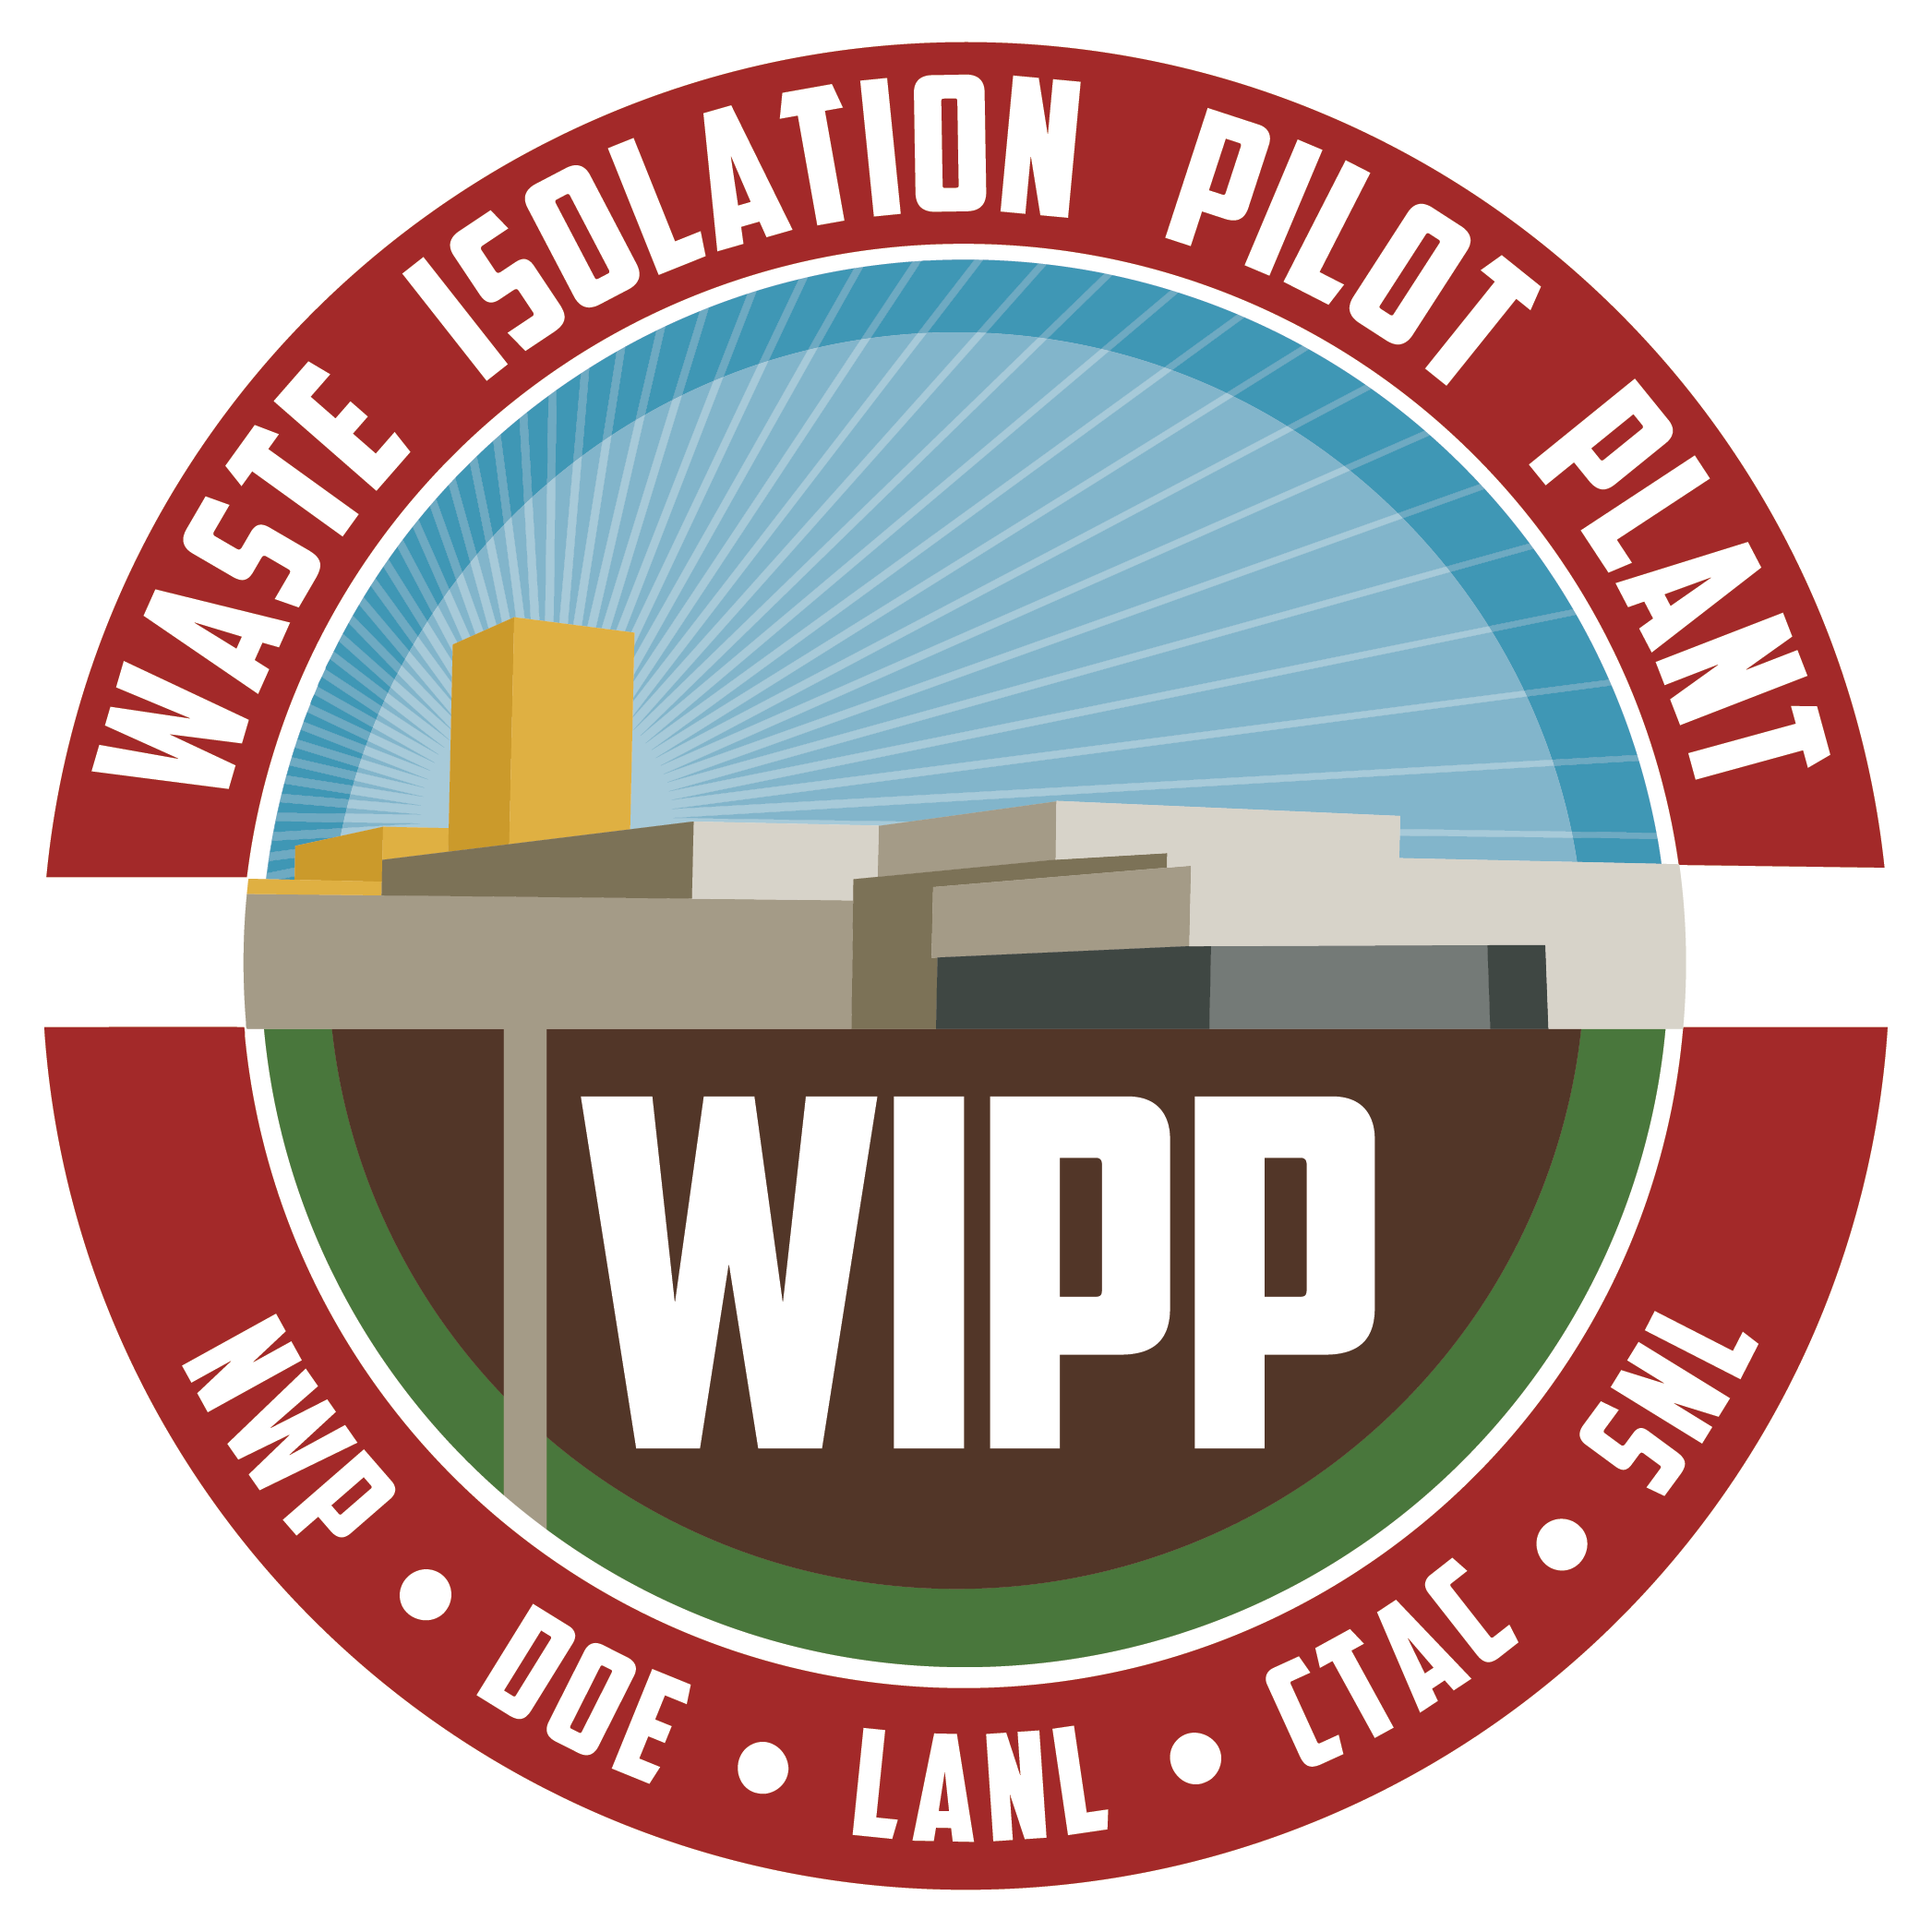 Waste Isolation Pilot Plant WIPP Logo